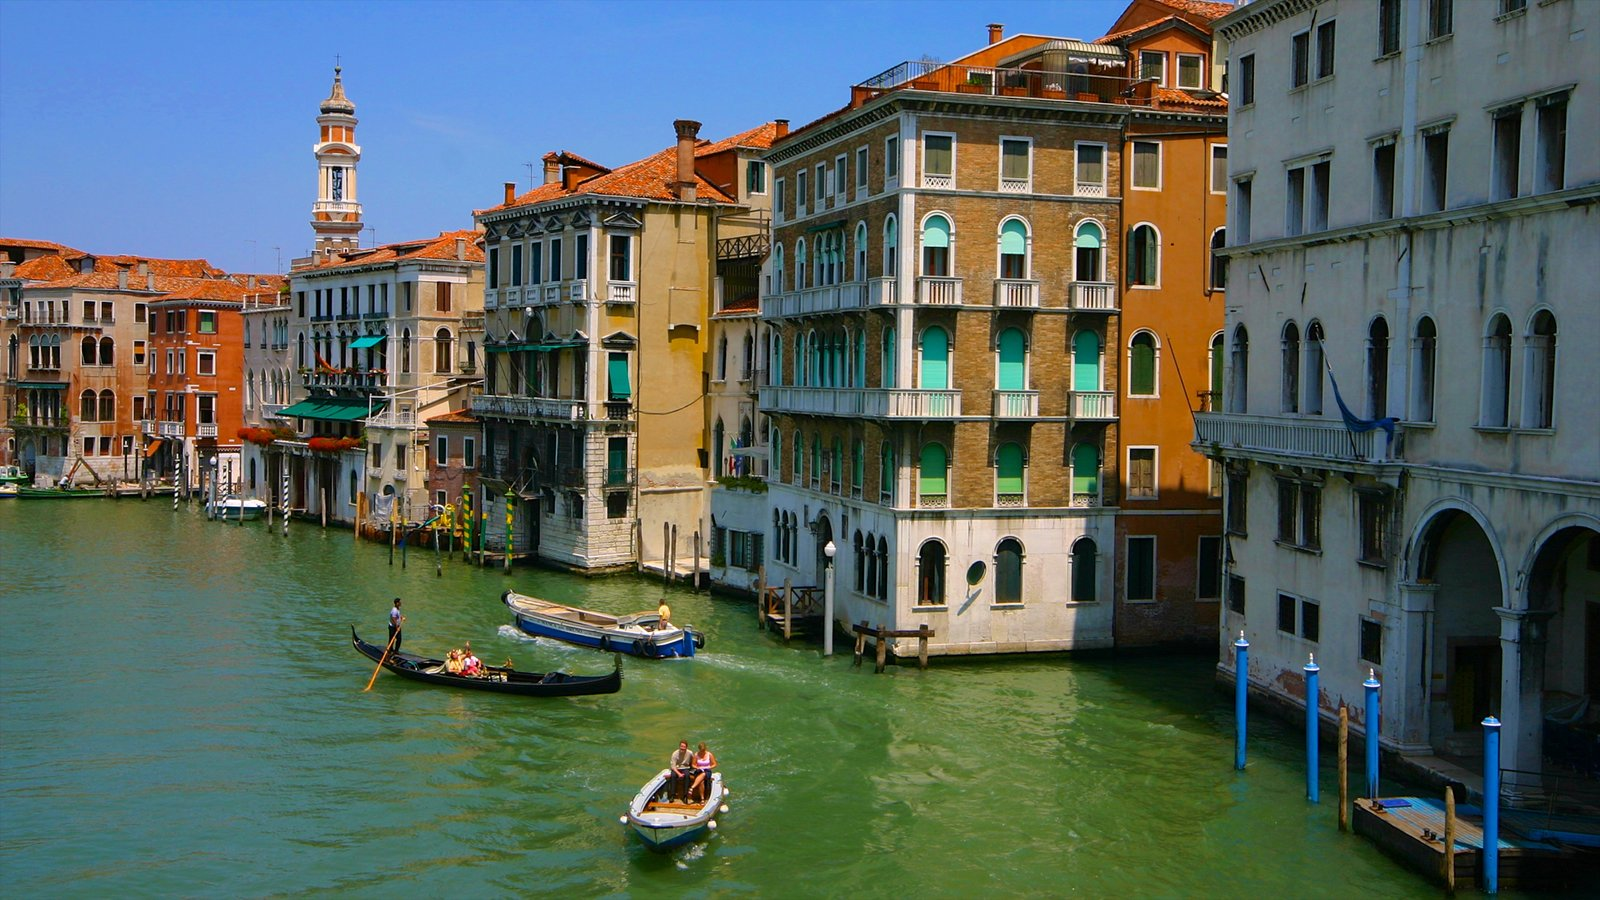 Grand Canal featuring heritage architecture